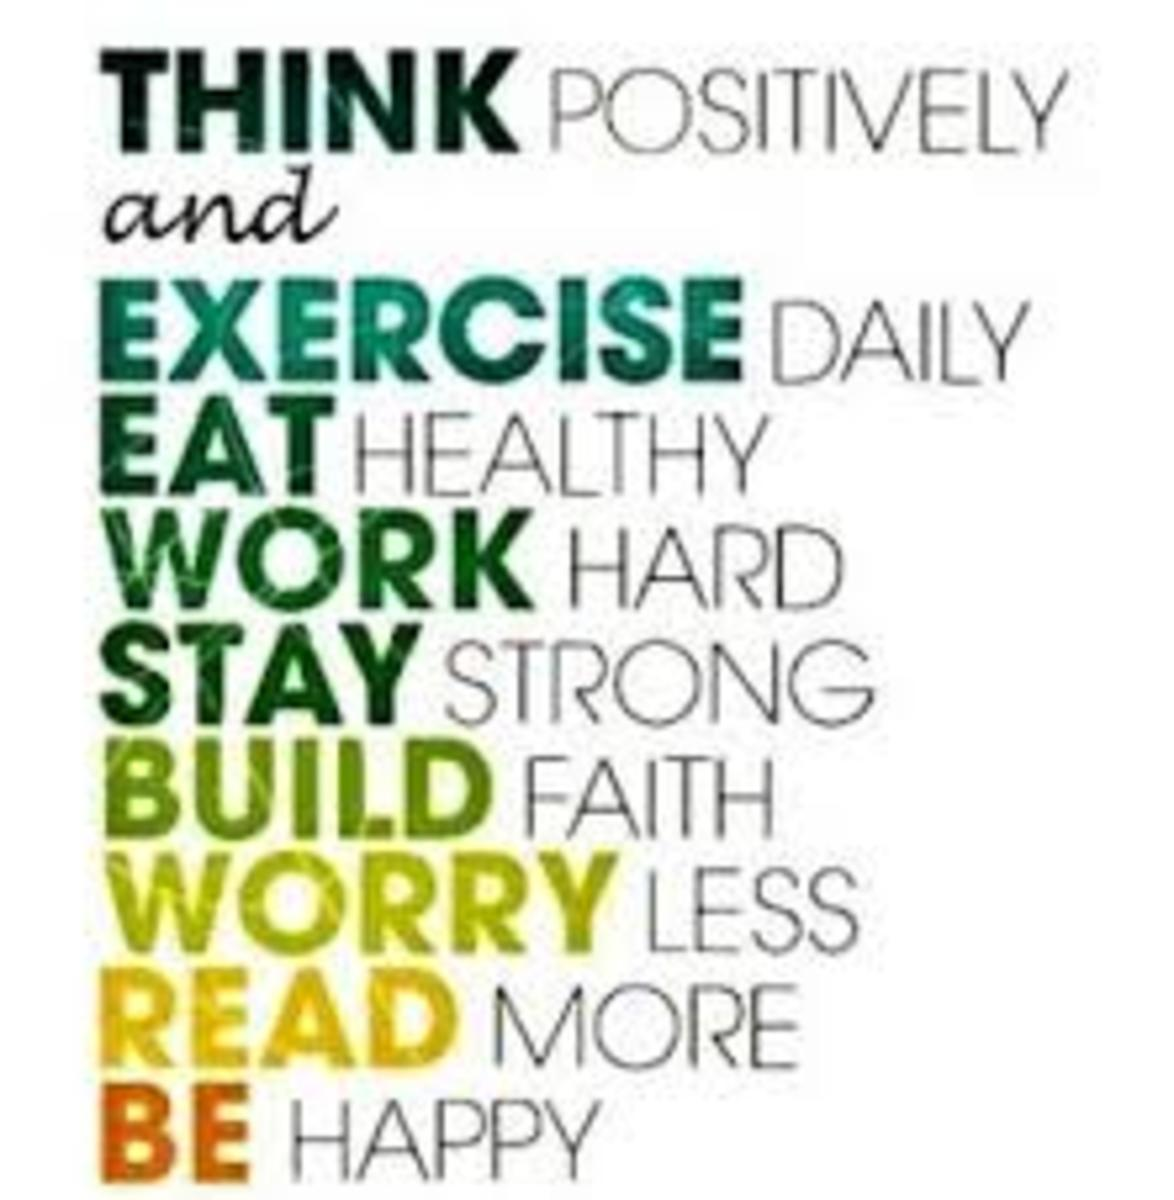 It is important to have the right attitude toward your health as it affects the quality of your life.